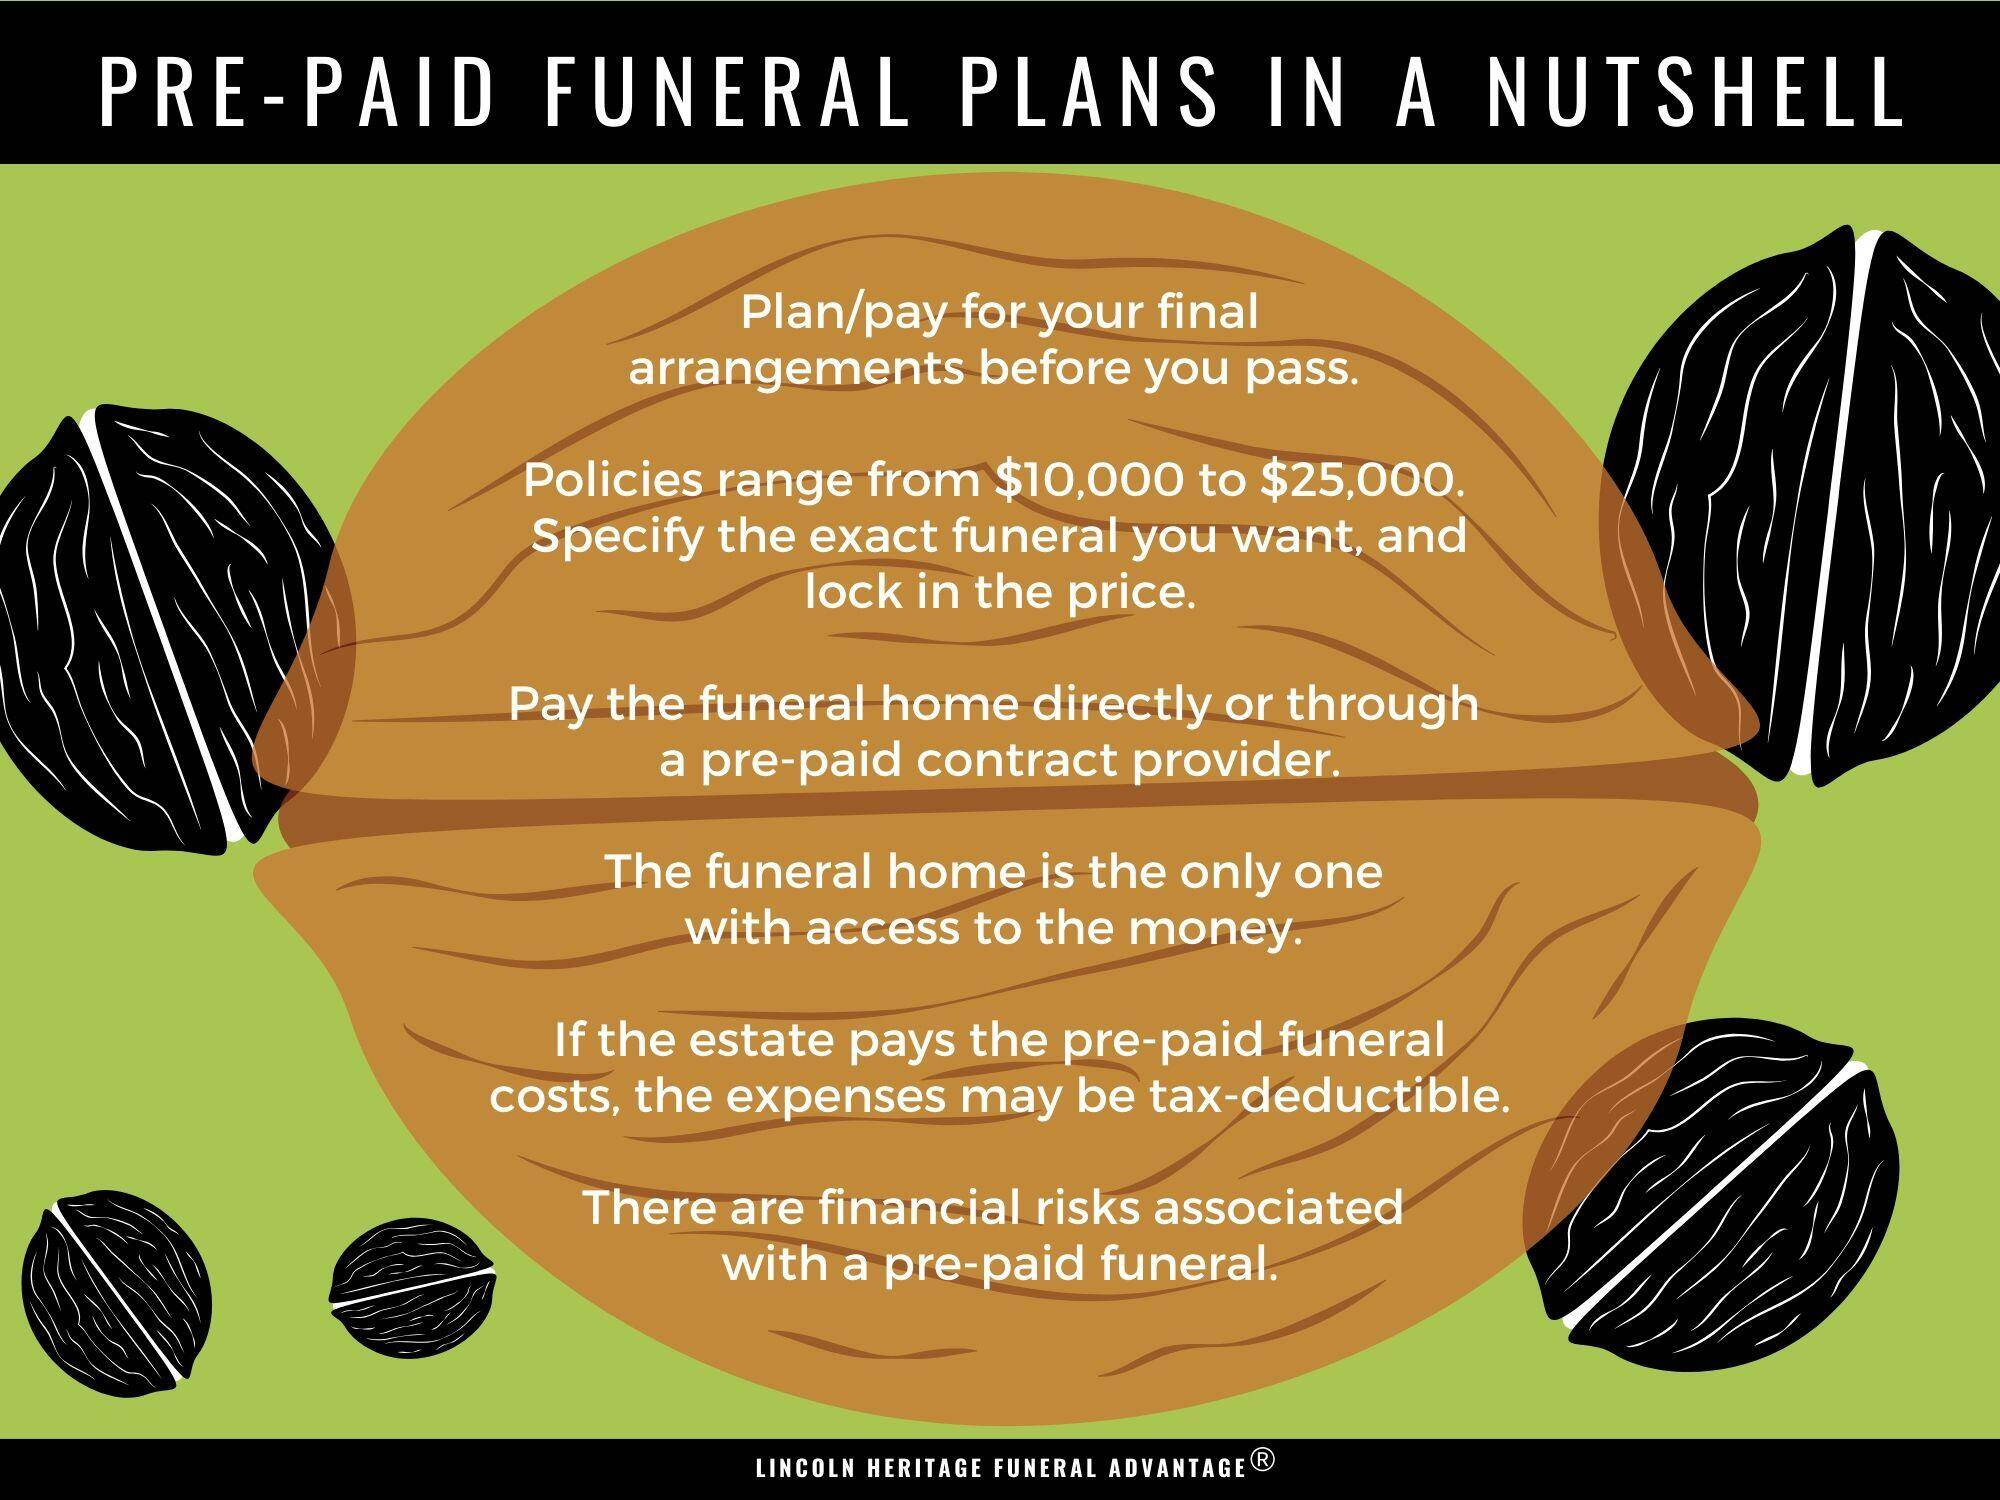 Prepaid Funeral Plans in a Nutshell